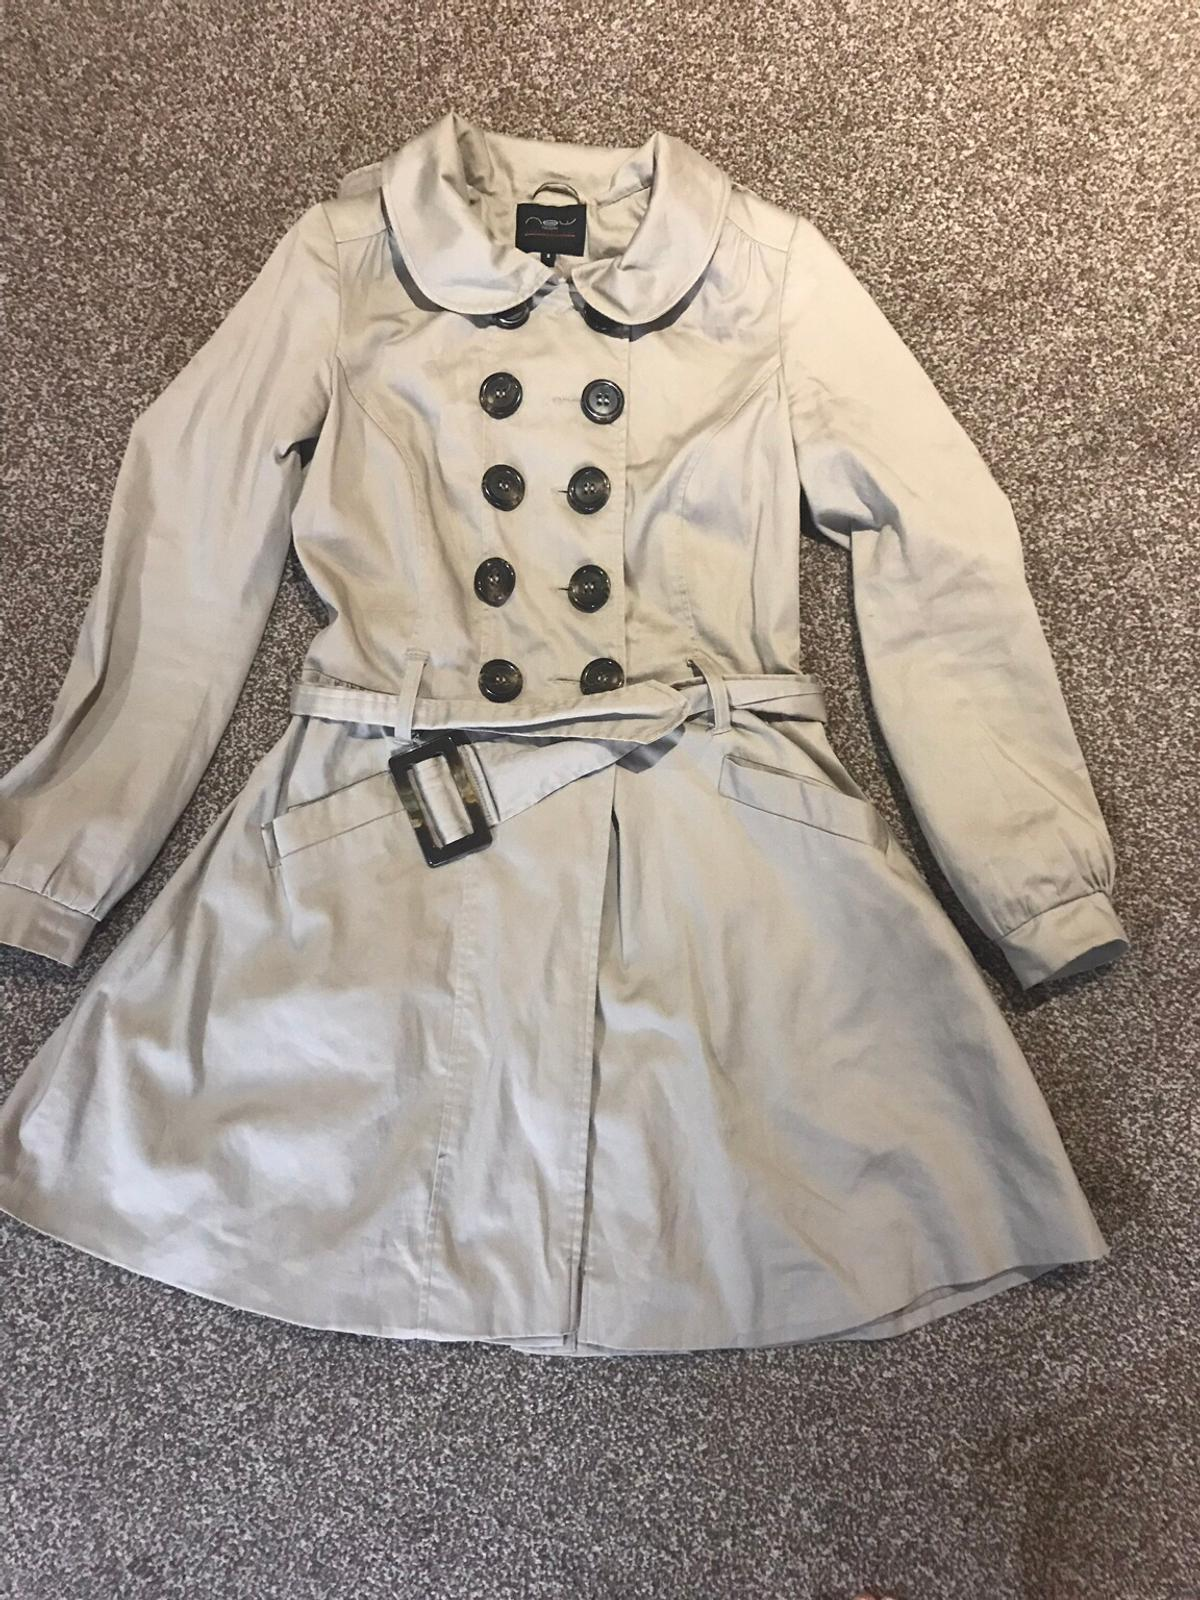 New Look Coat In great condition Size 8 message me for more information